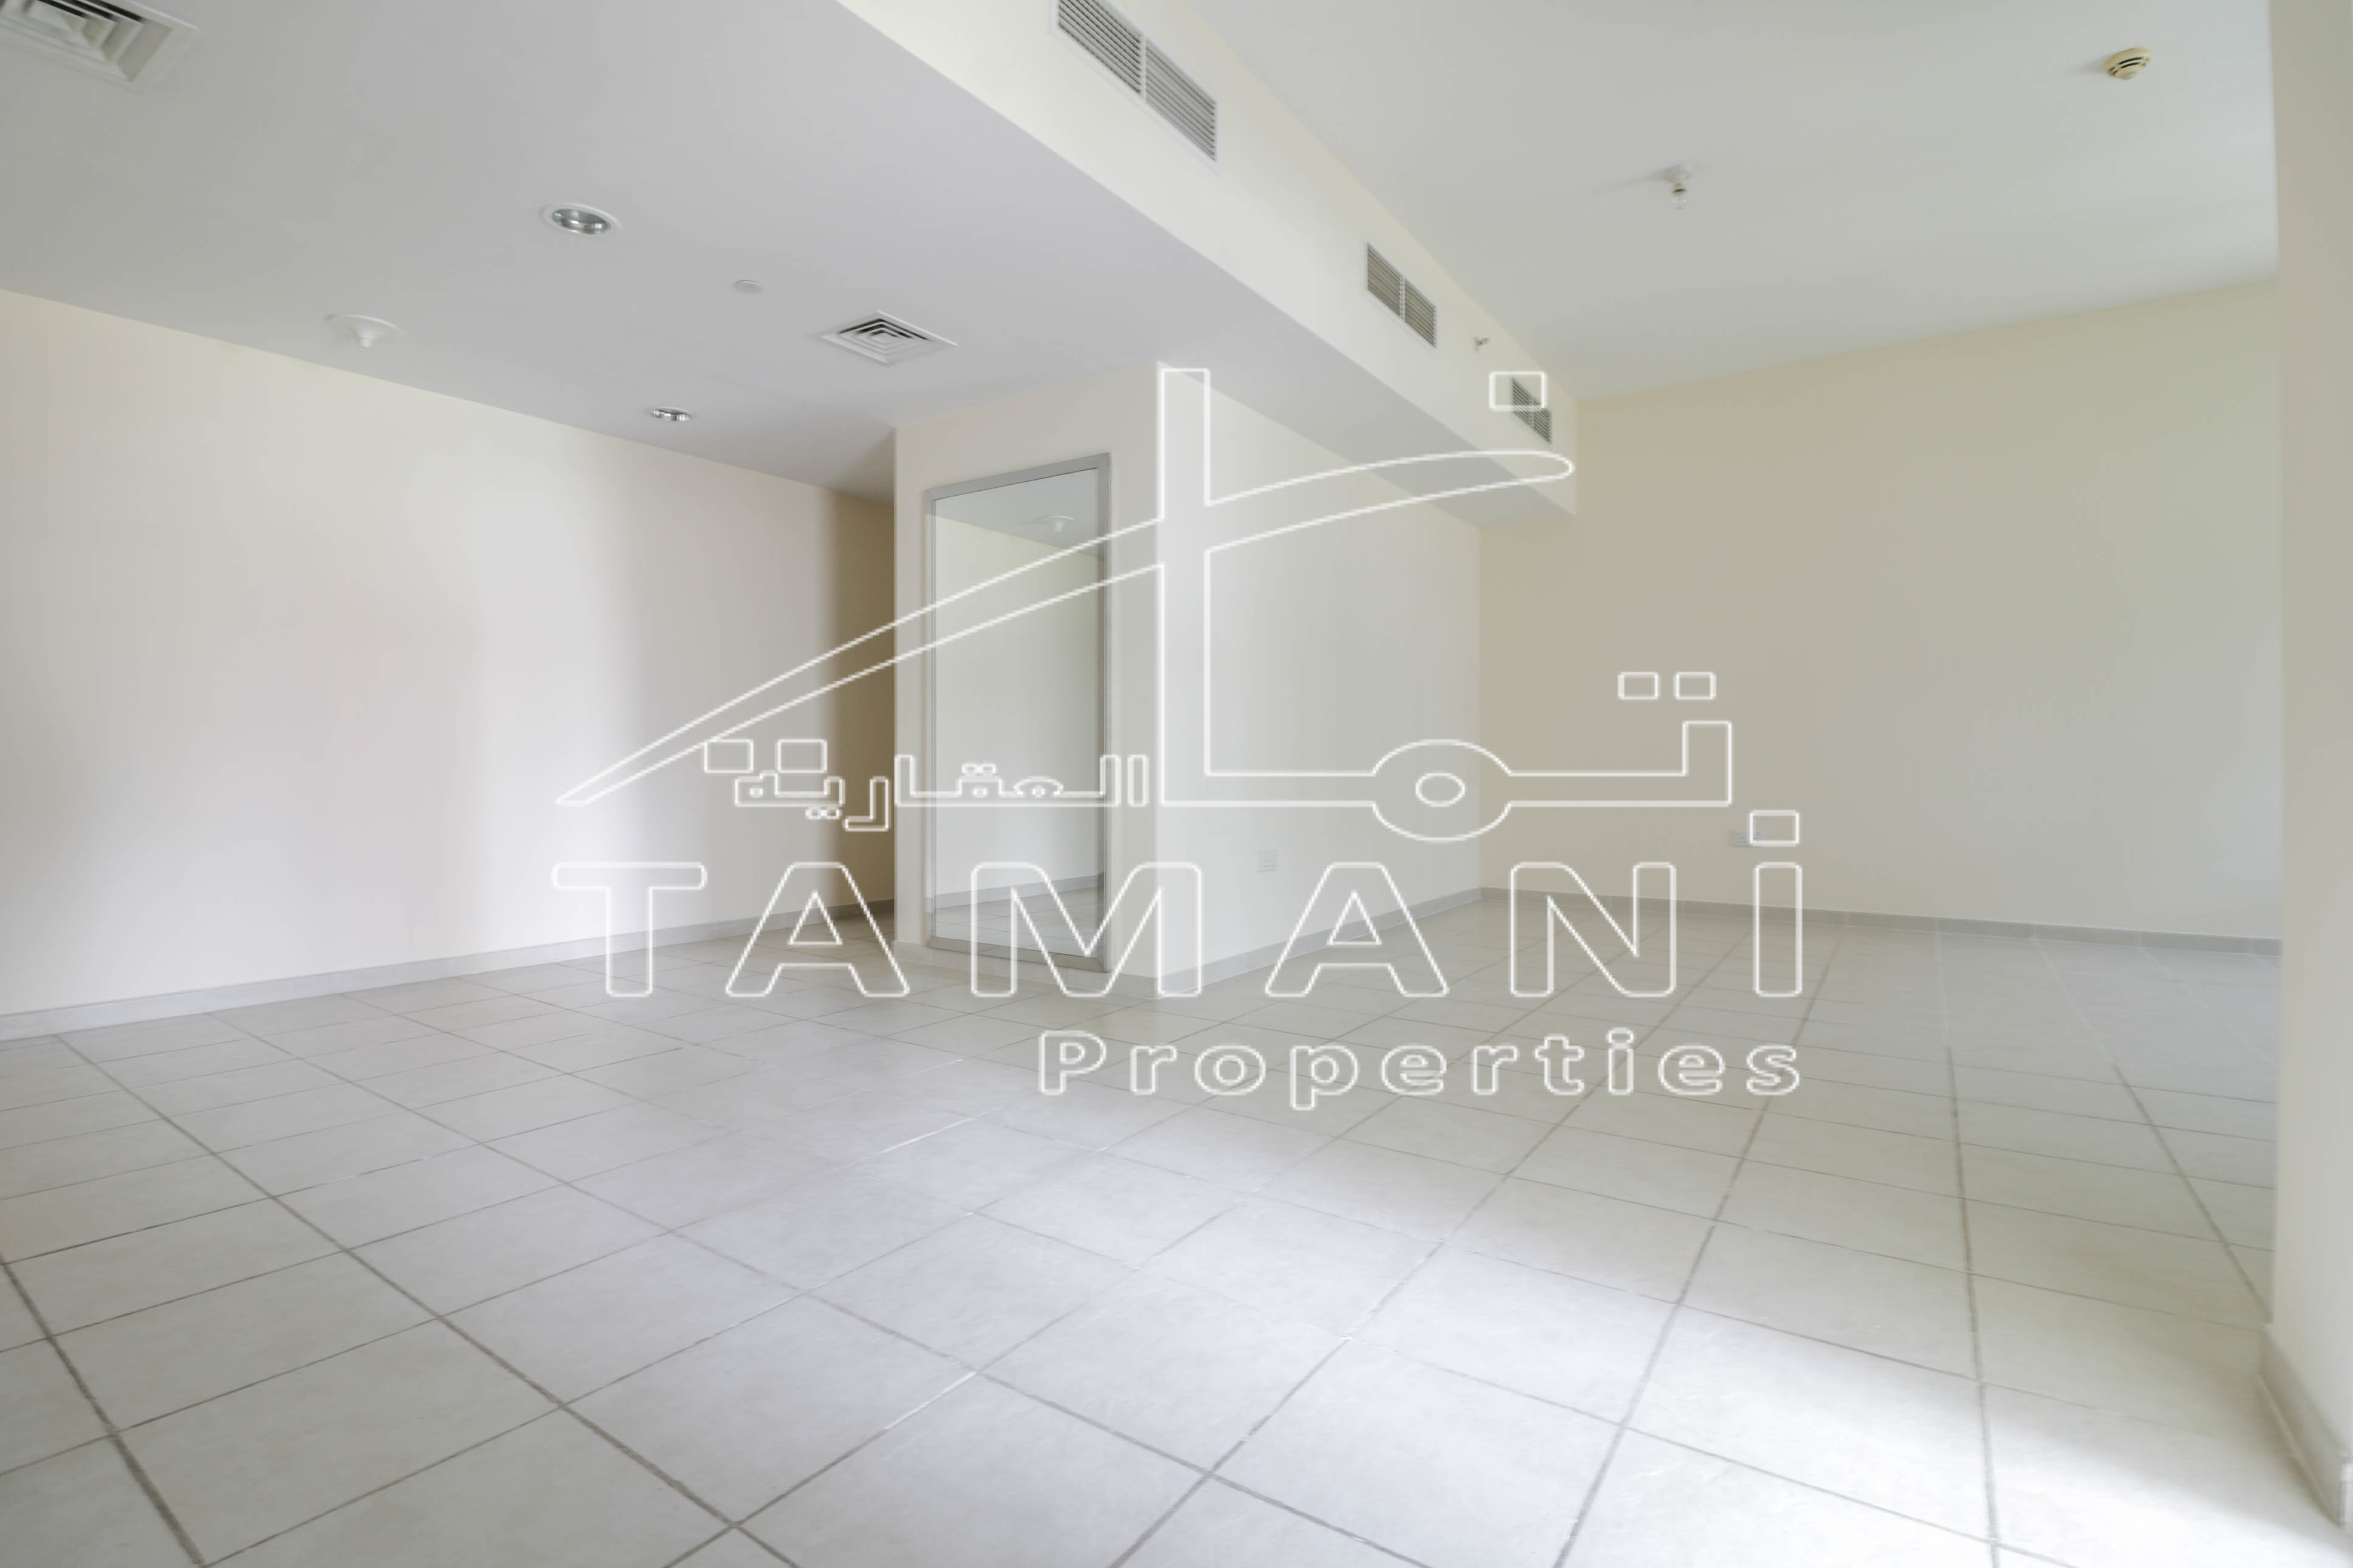 SPECIOUS 1 BR | RARE LAYOUT | BEST PRICE - Executive Towers